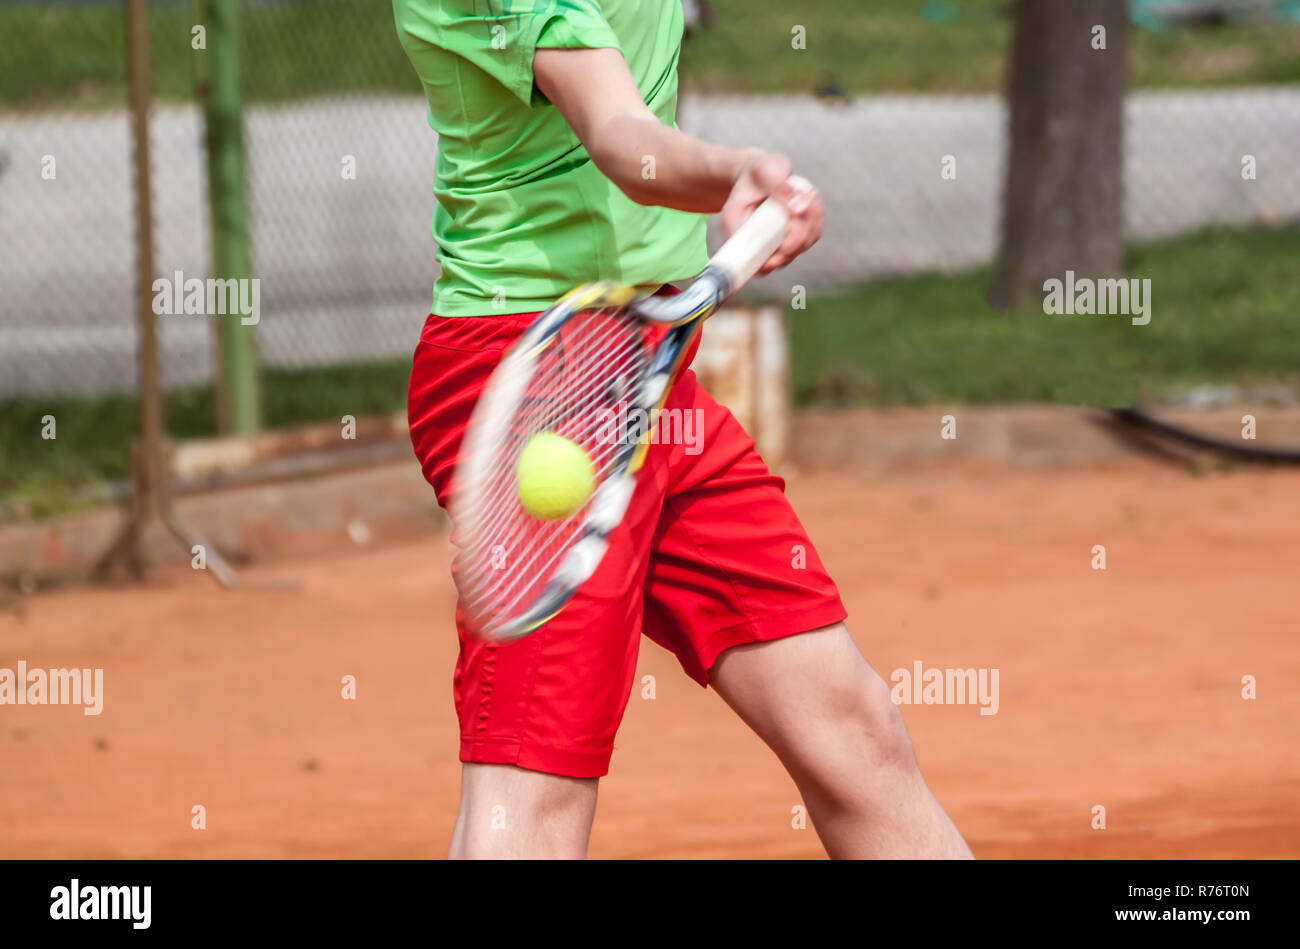 Tennis racket cord and ball deforming from the power of a forehand strike. - Stock Image